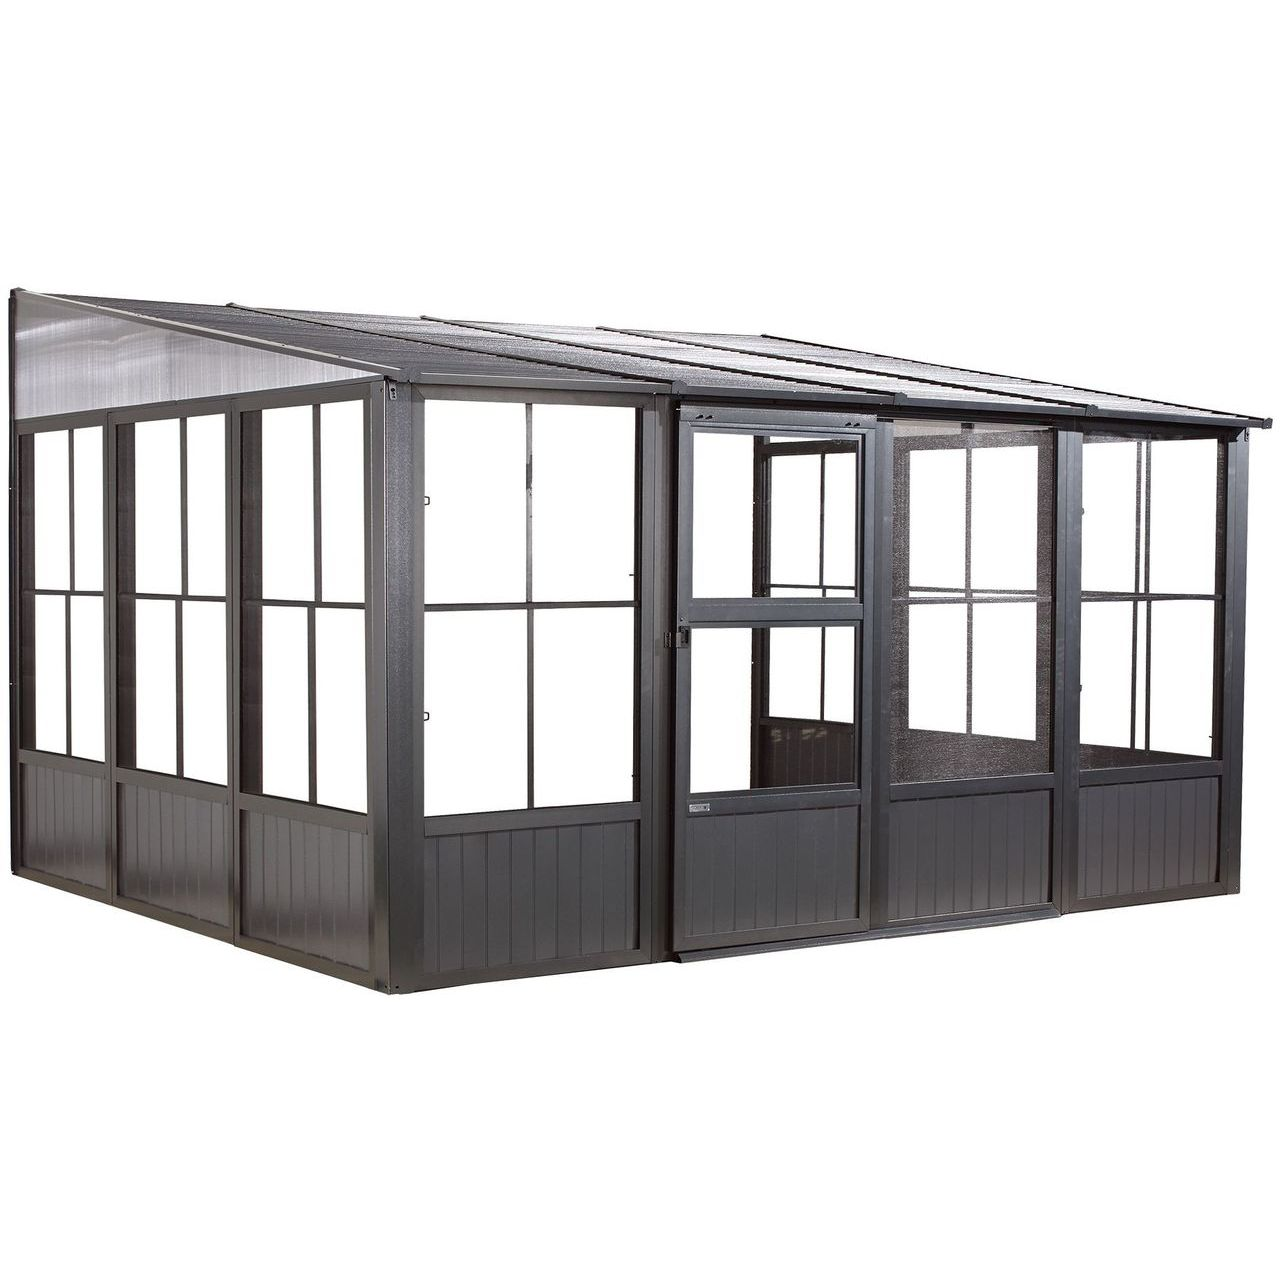 Sojag Charleston #93D Wall Solarium With Steel Roof - 10x10 Ft